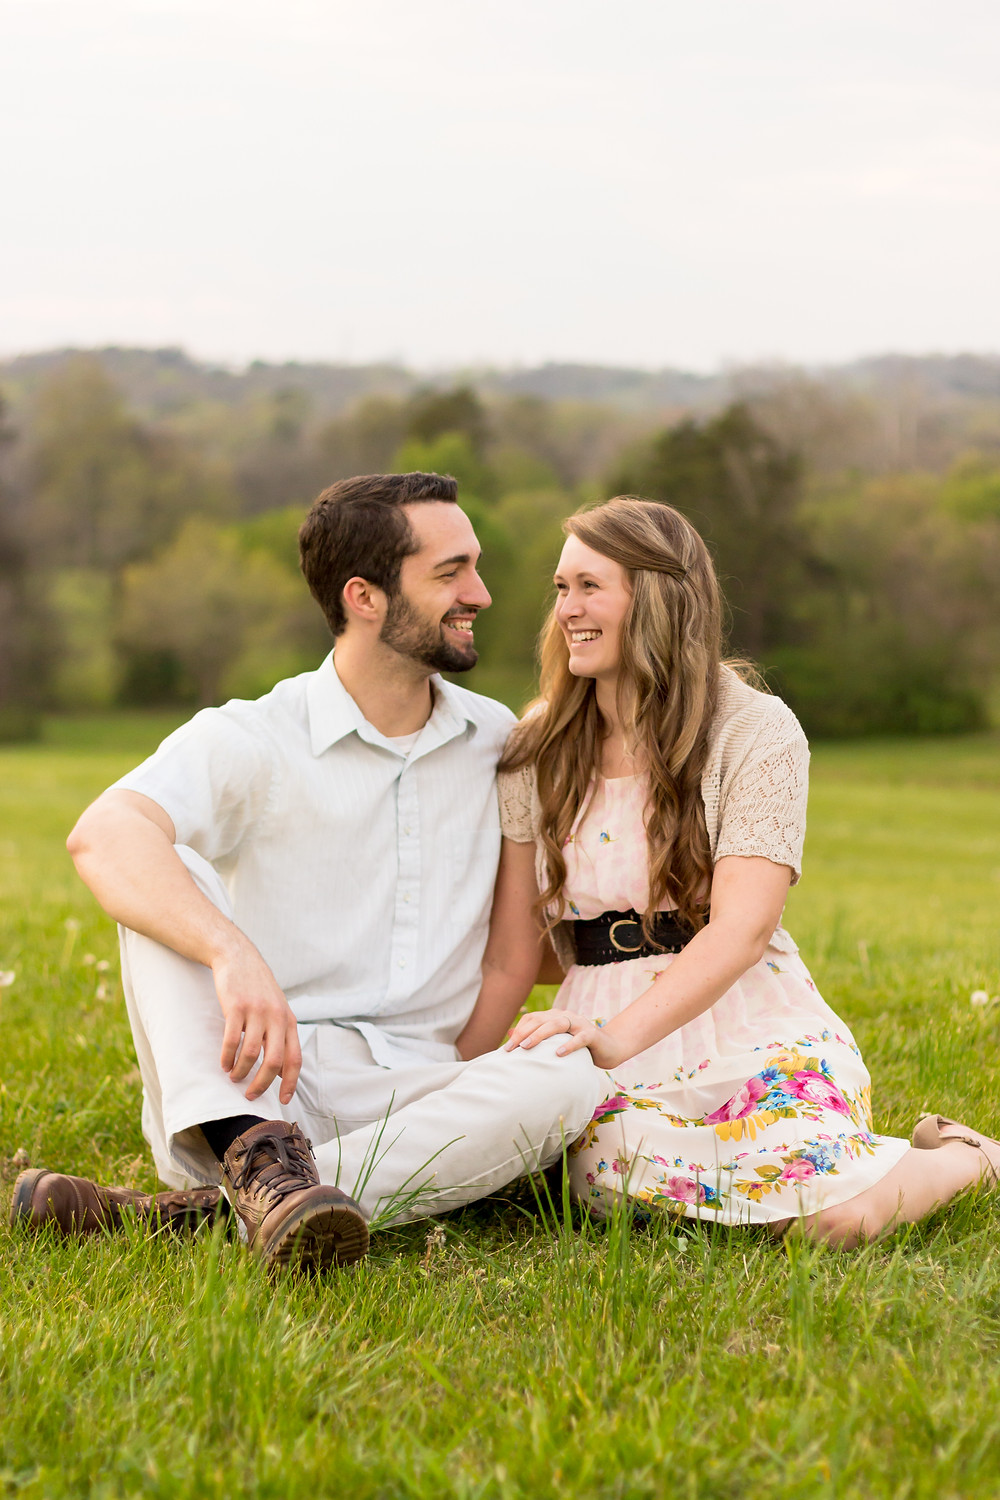 Sam and Jenna sit in a field and smile after becoming wedding photographers